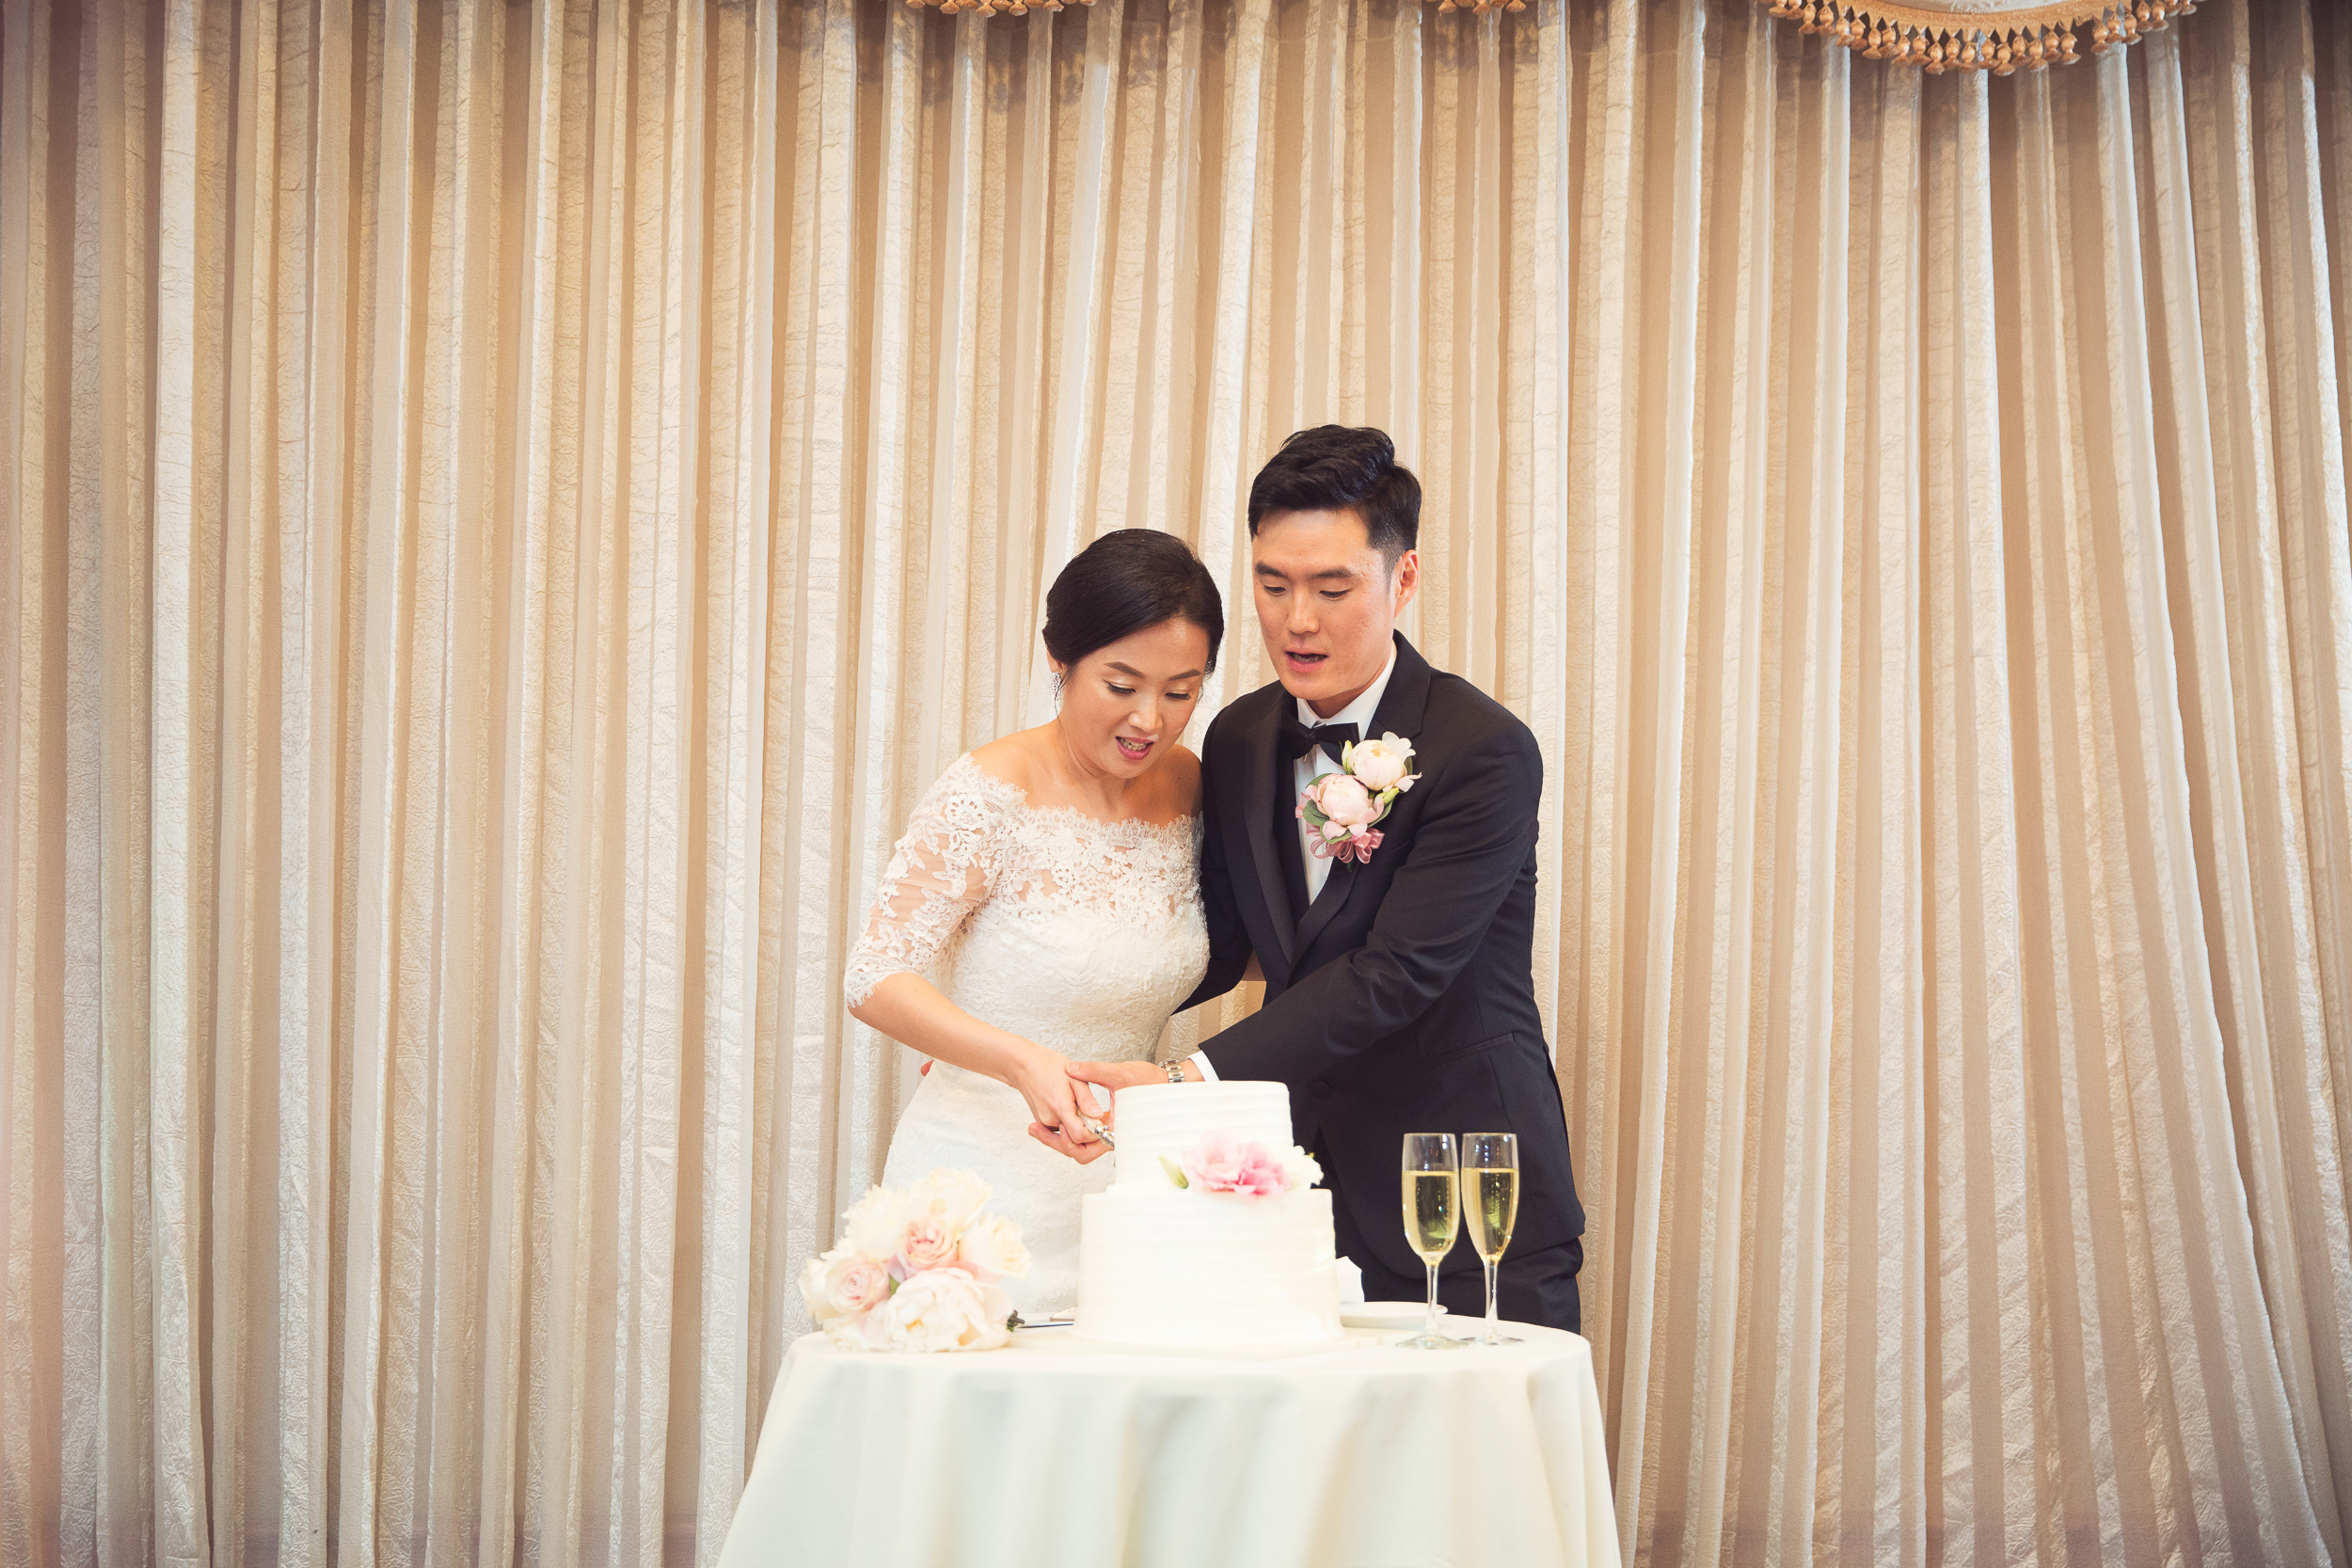 76_Ji Young Choi & Kyungmin Song Wedding